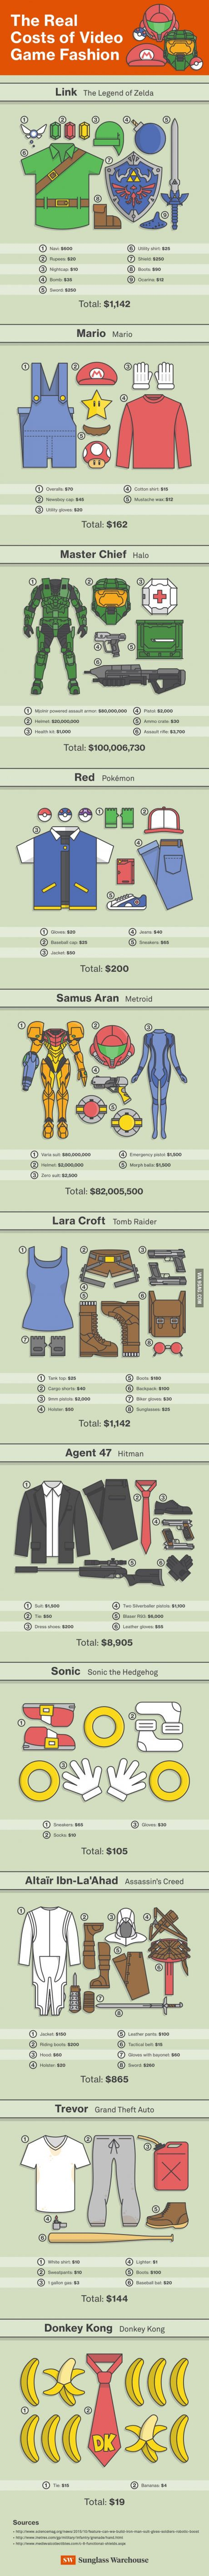 The real costs of video game fashion